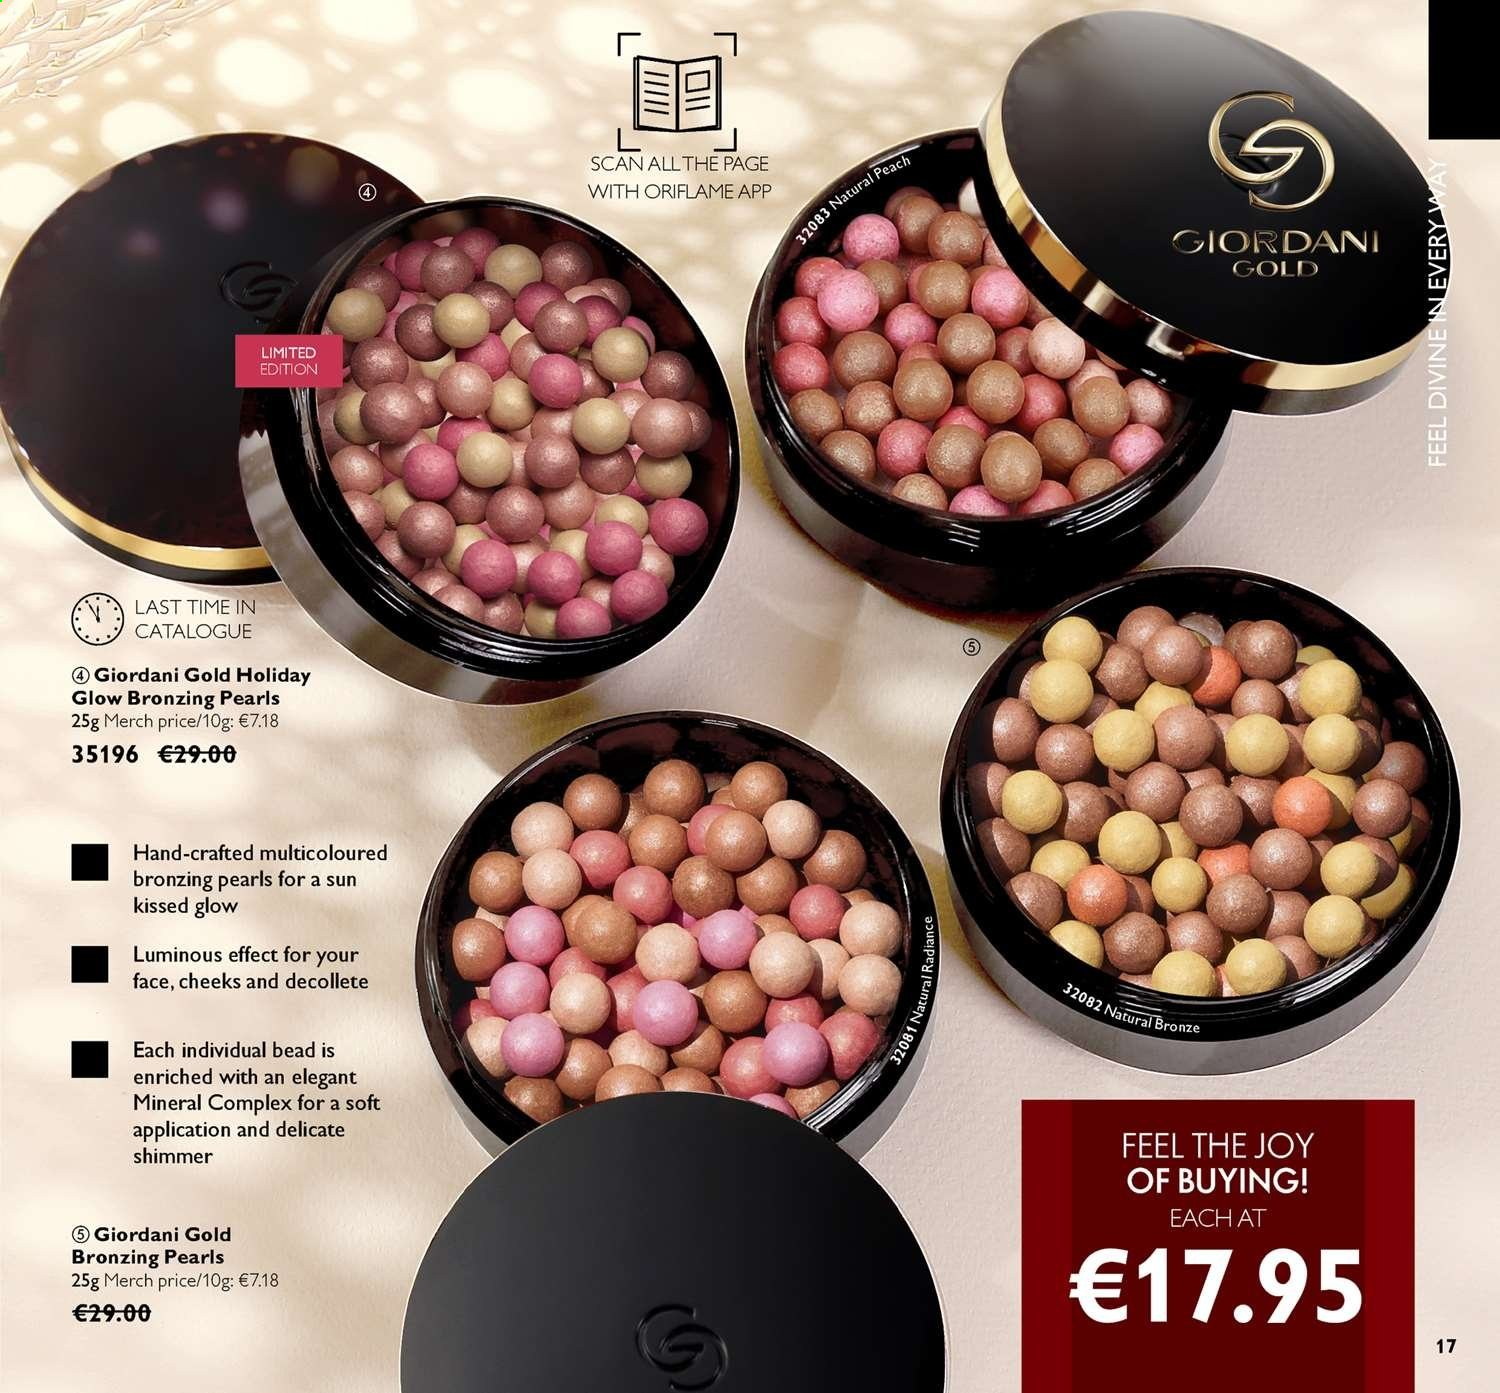 Oriflame offer  - 14.6.2019 - 4.7.2019 - Sales products - bronzing pearls, giordani gold. Page 17.